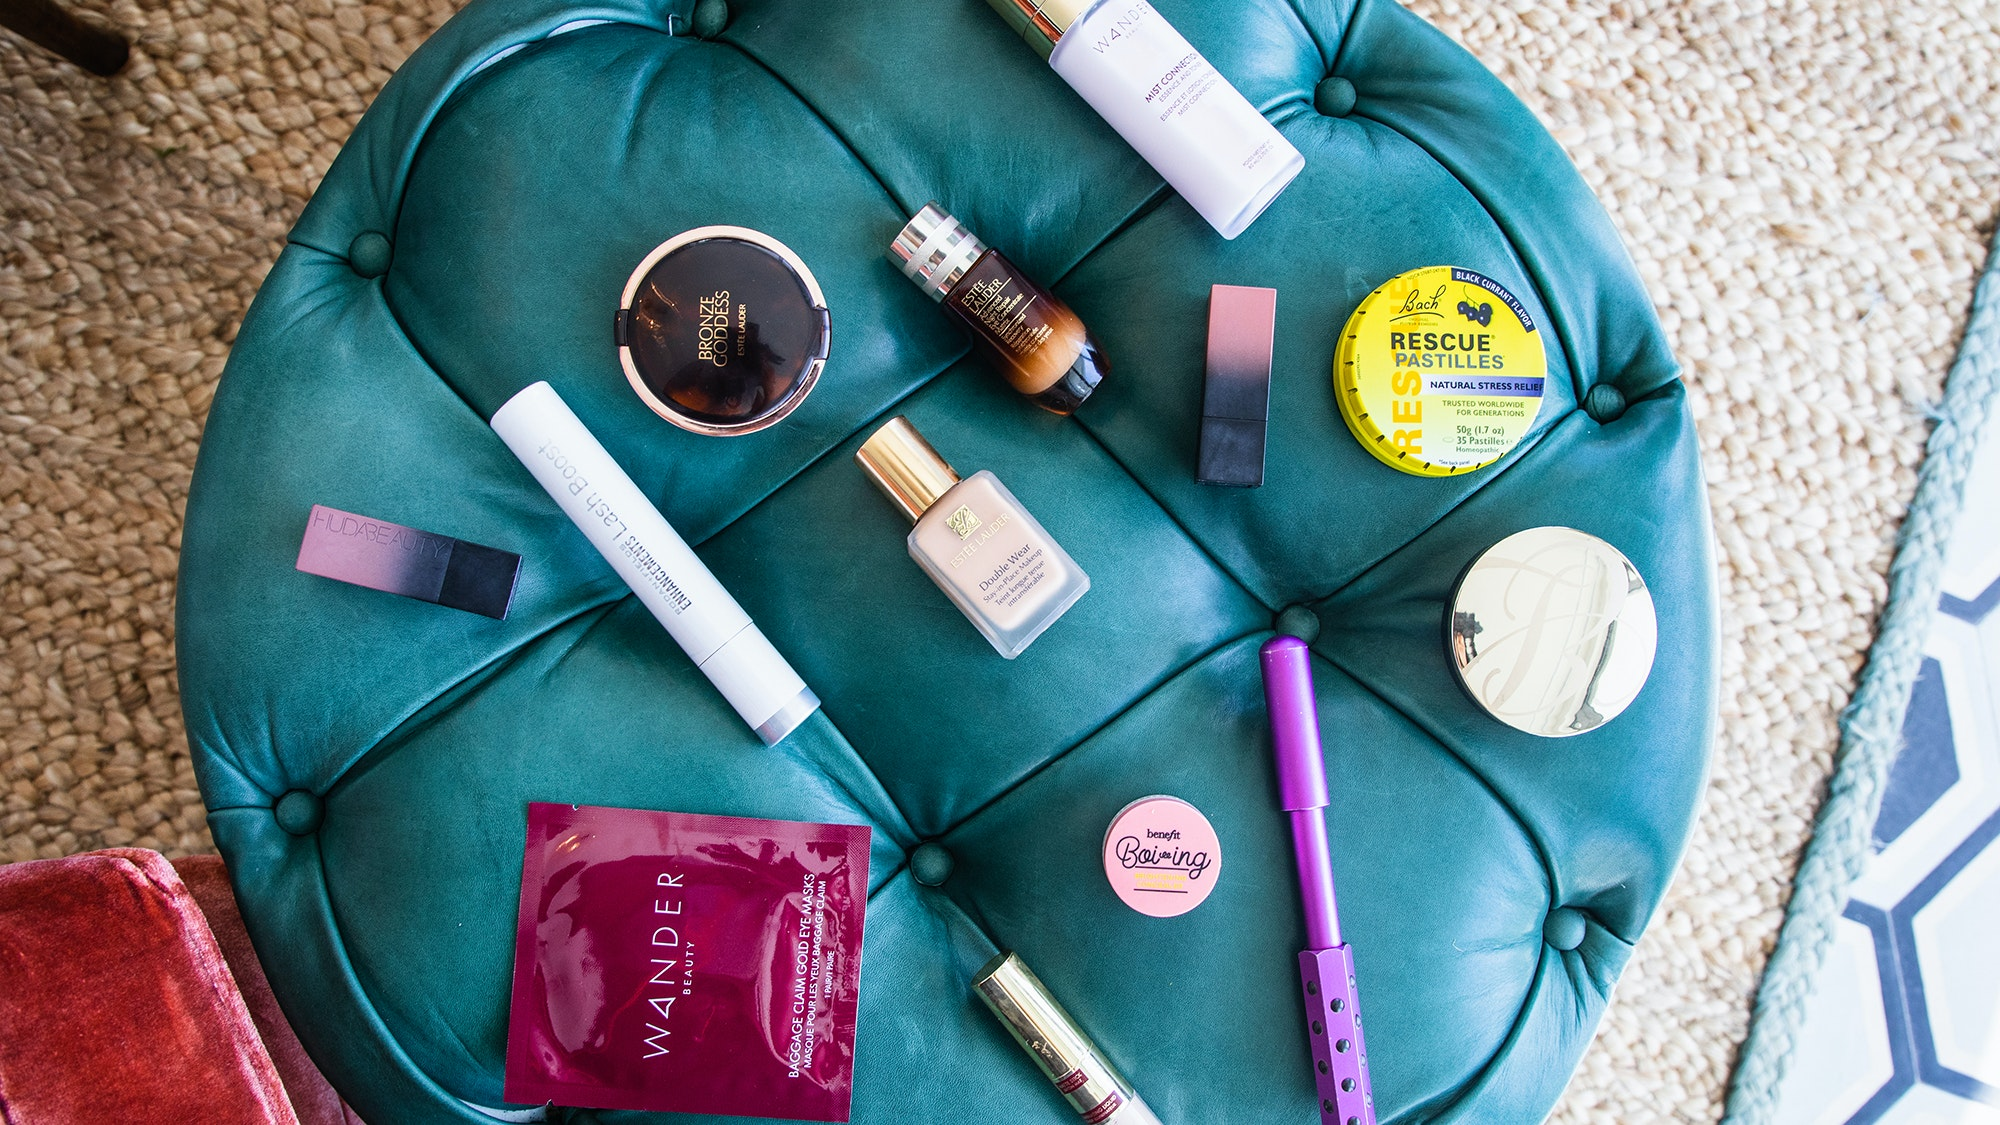 Ana Quincoces makeup and skincare on futon